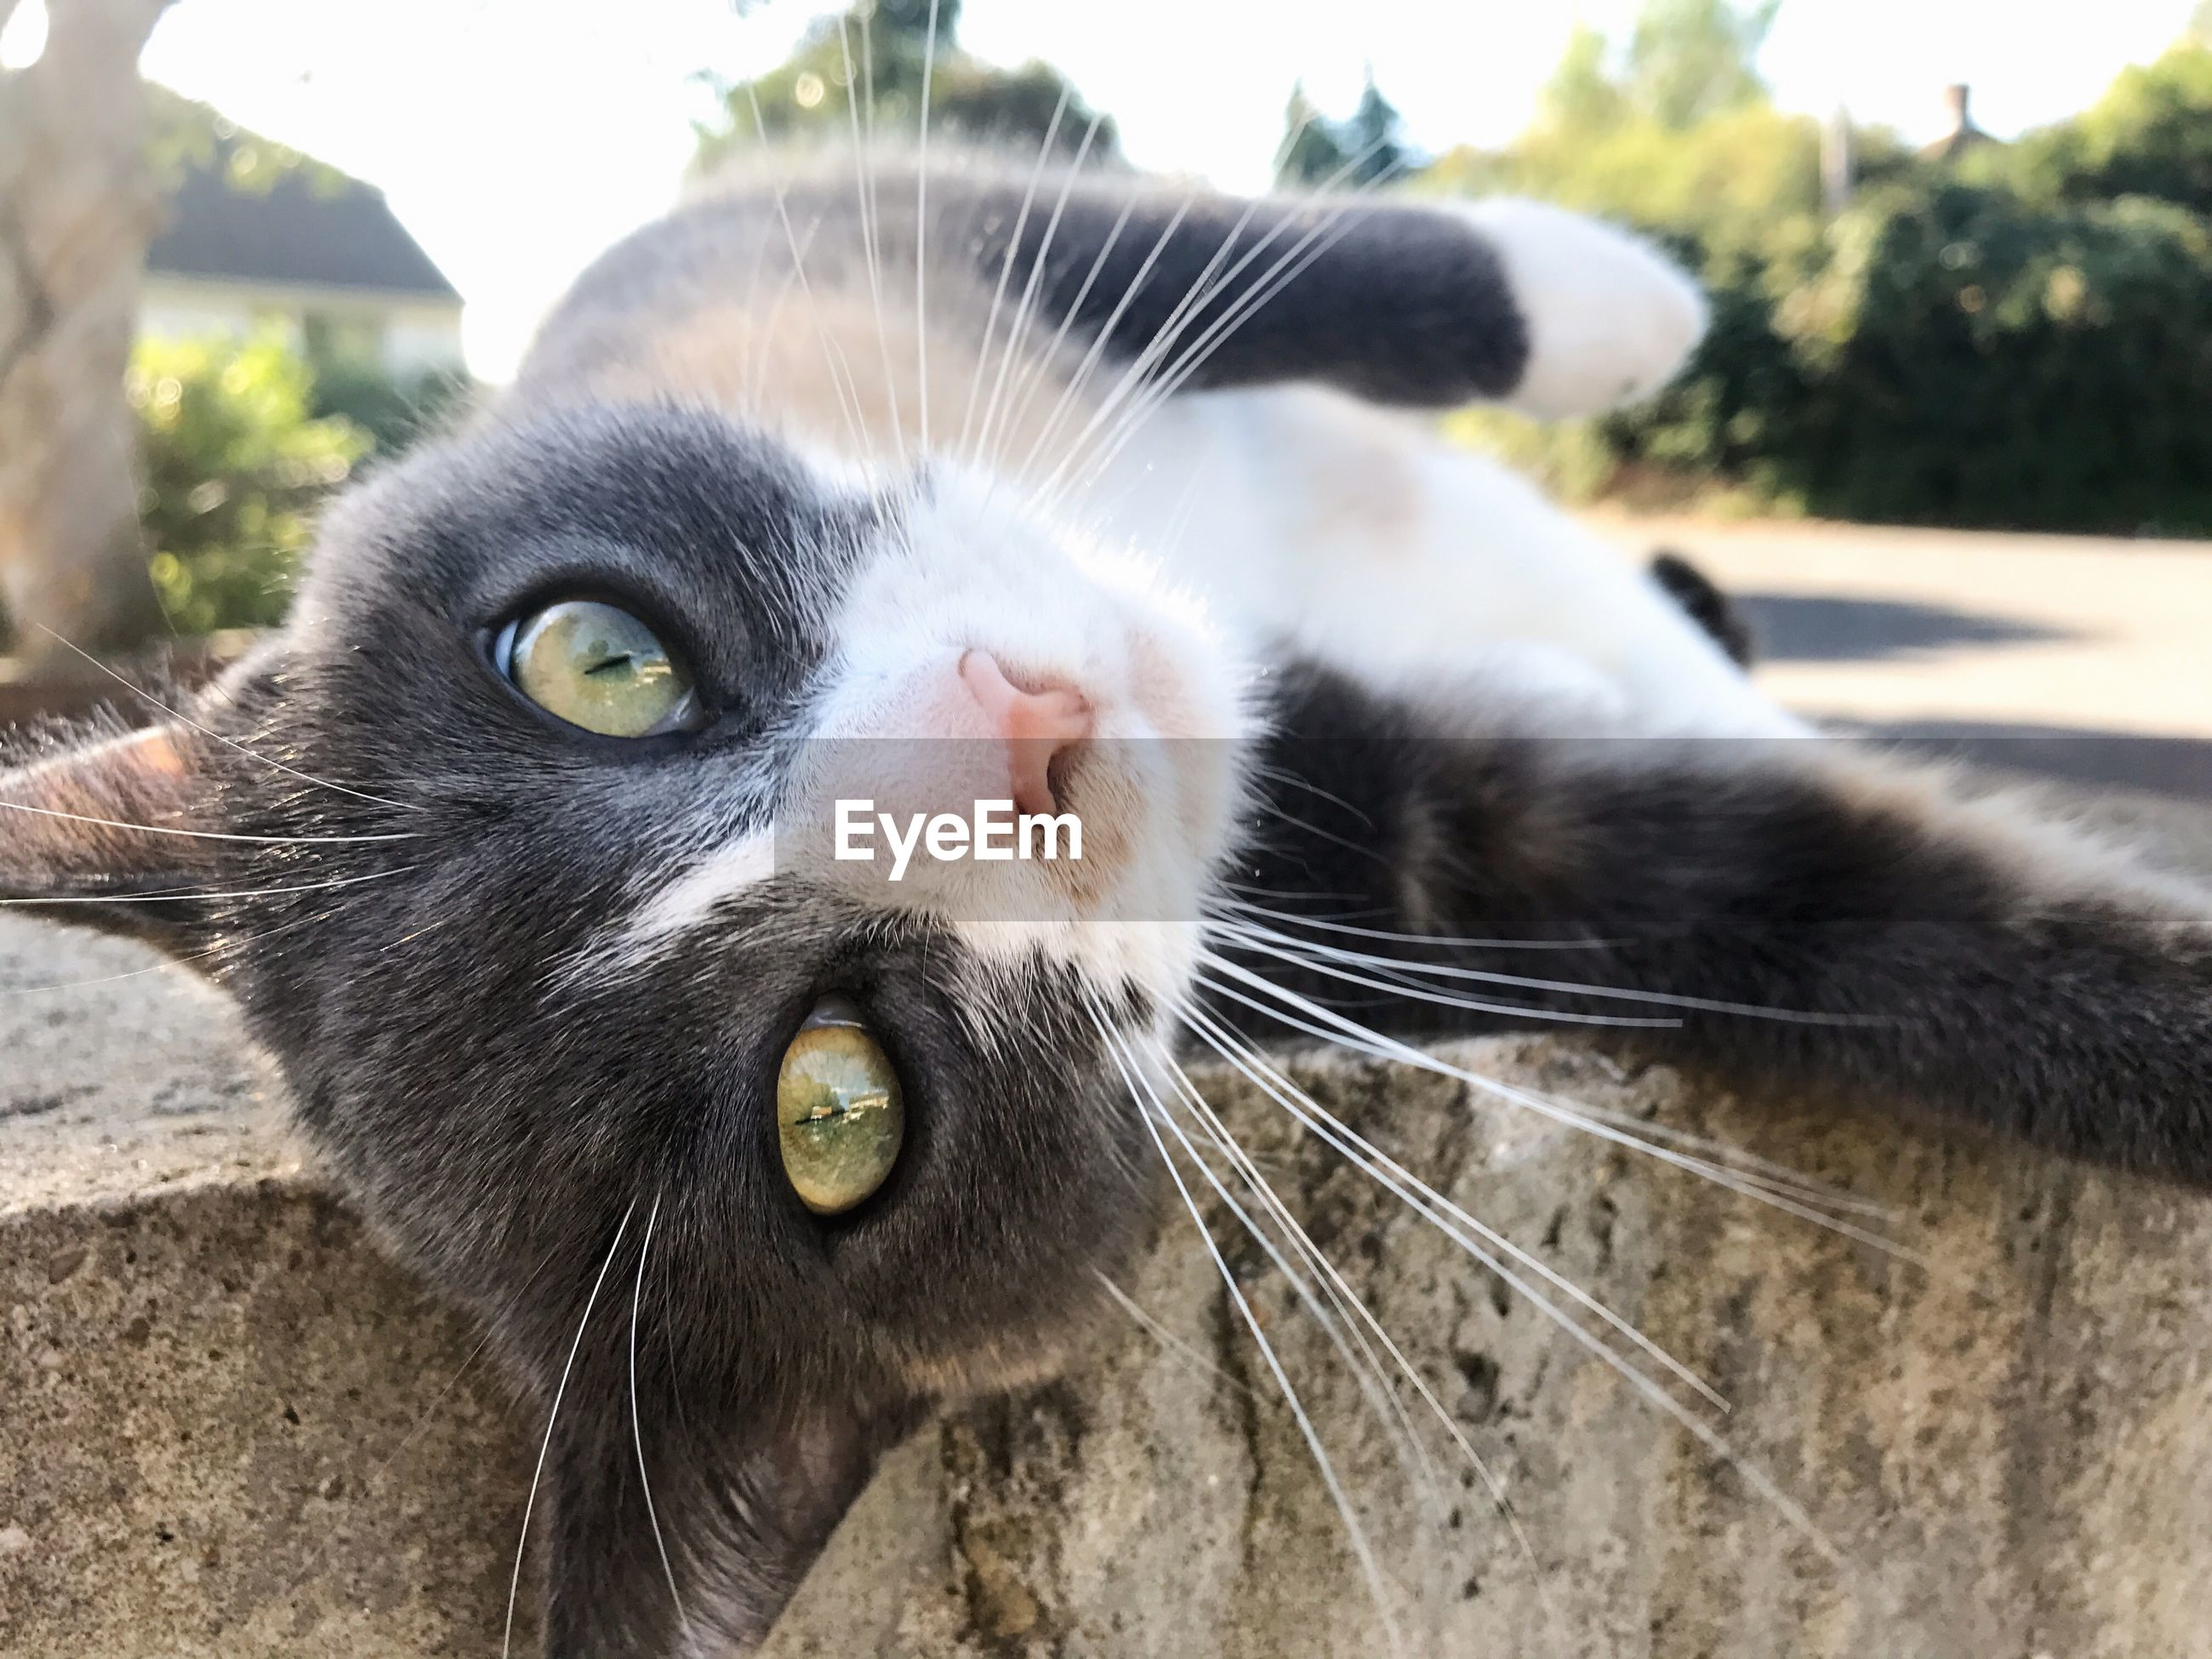 Close-up portrait of cat lying on retaining wall